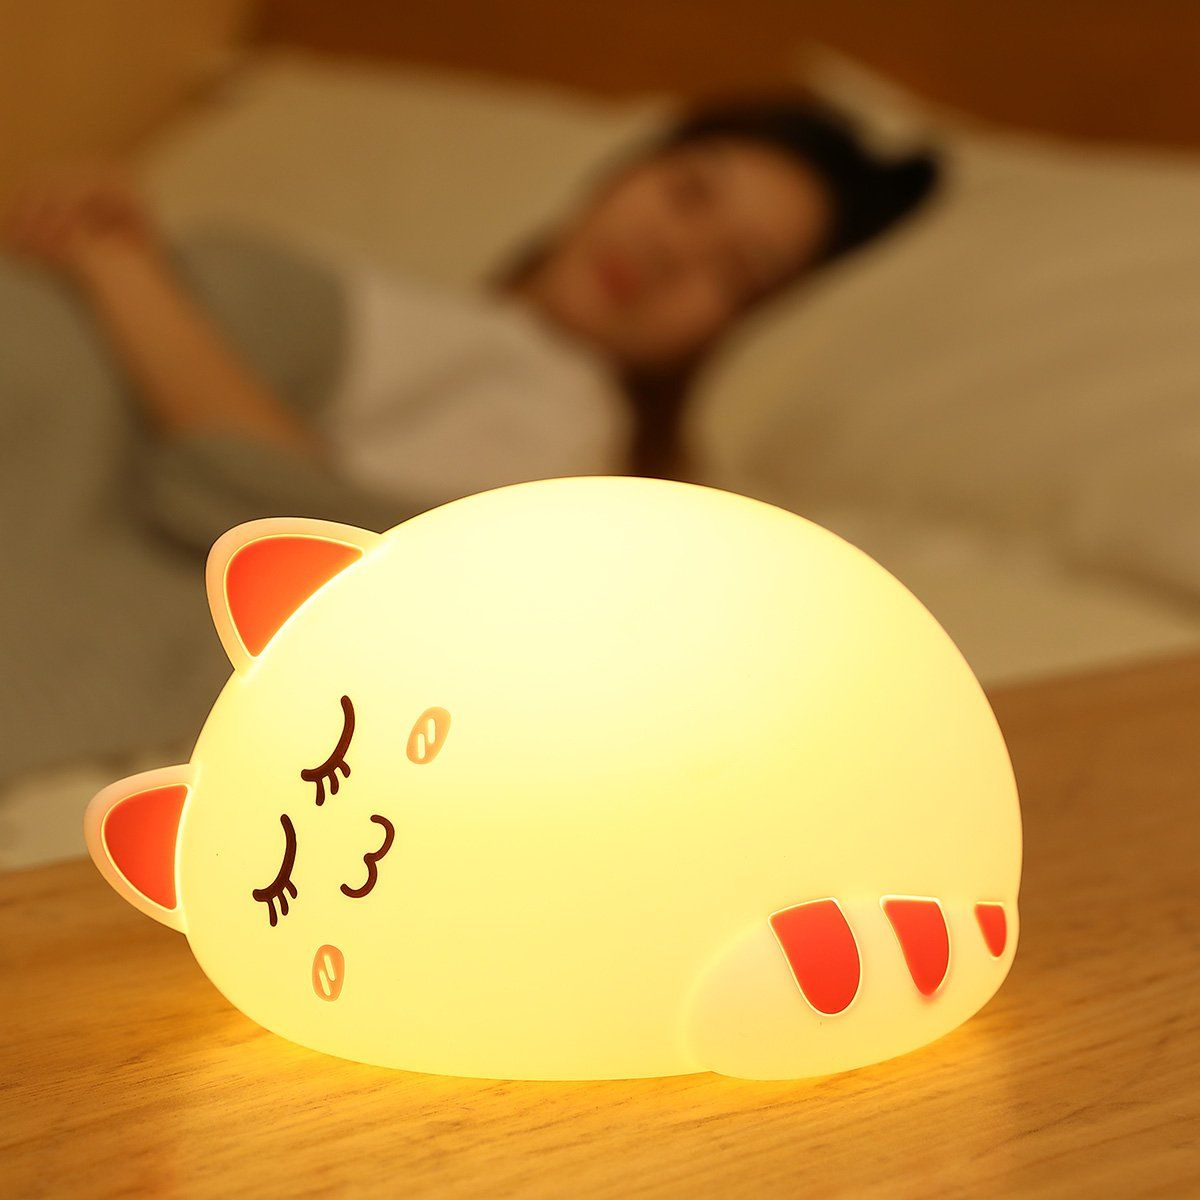 Best Nightlight For Sleep Onefire Baby Led Nursery Night Light For Kids Tap Control Soft